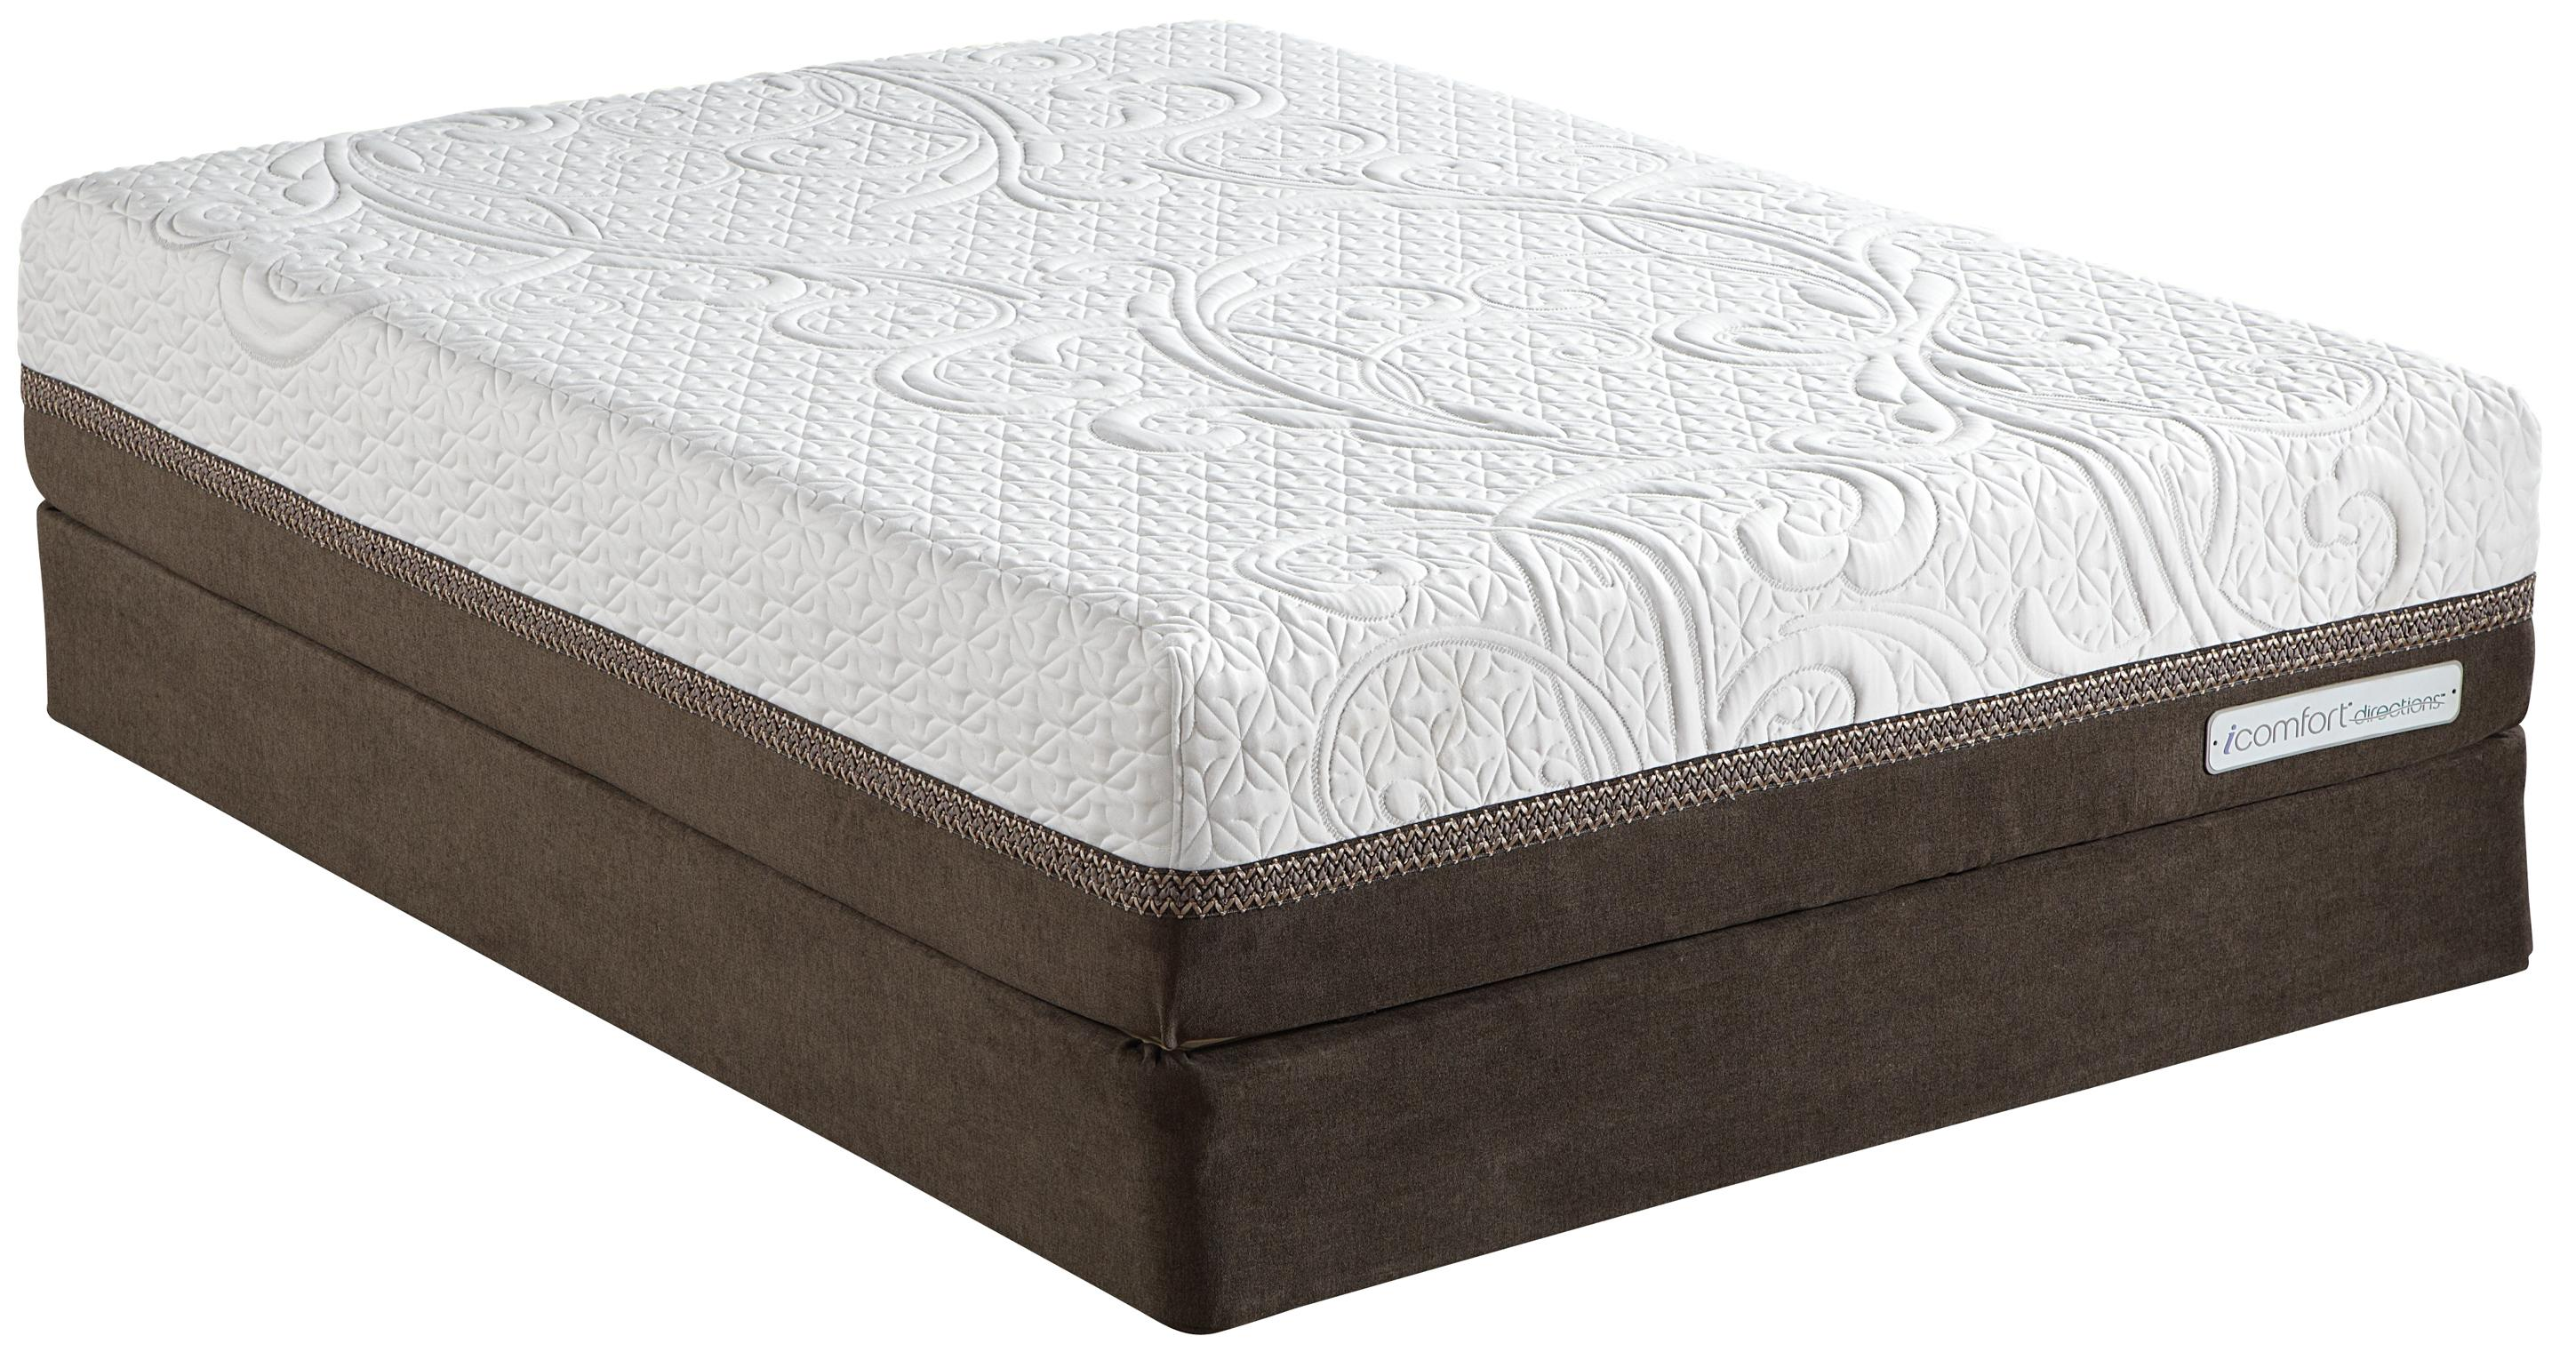 Serta iComfort Directions Acumen Twin XL Plush Memory Foam Mattress - Item Number: 823038TXL